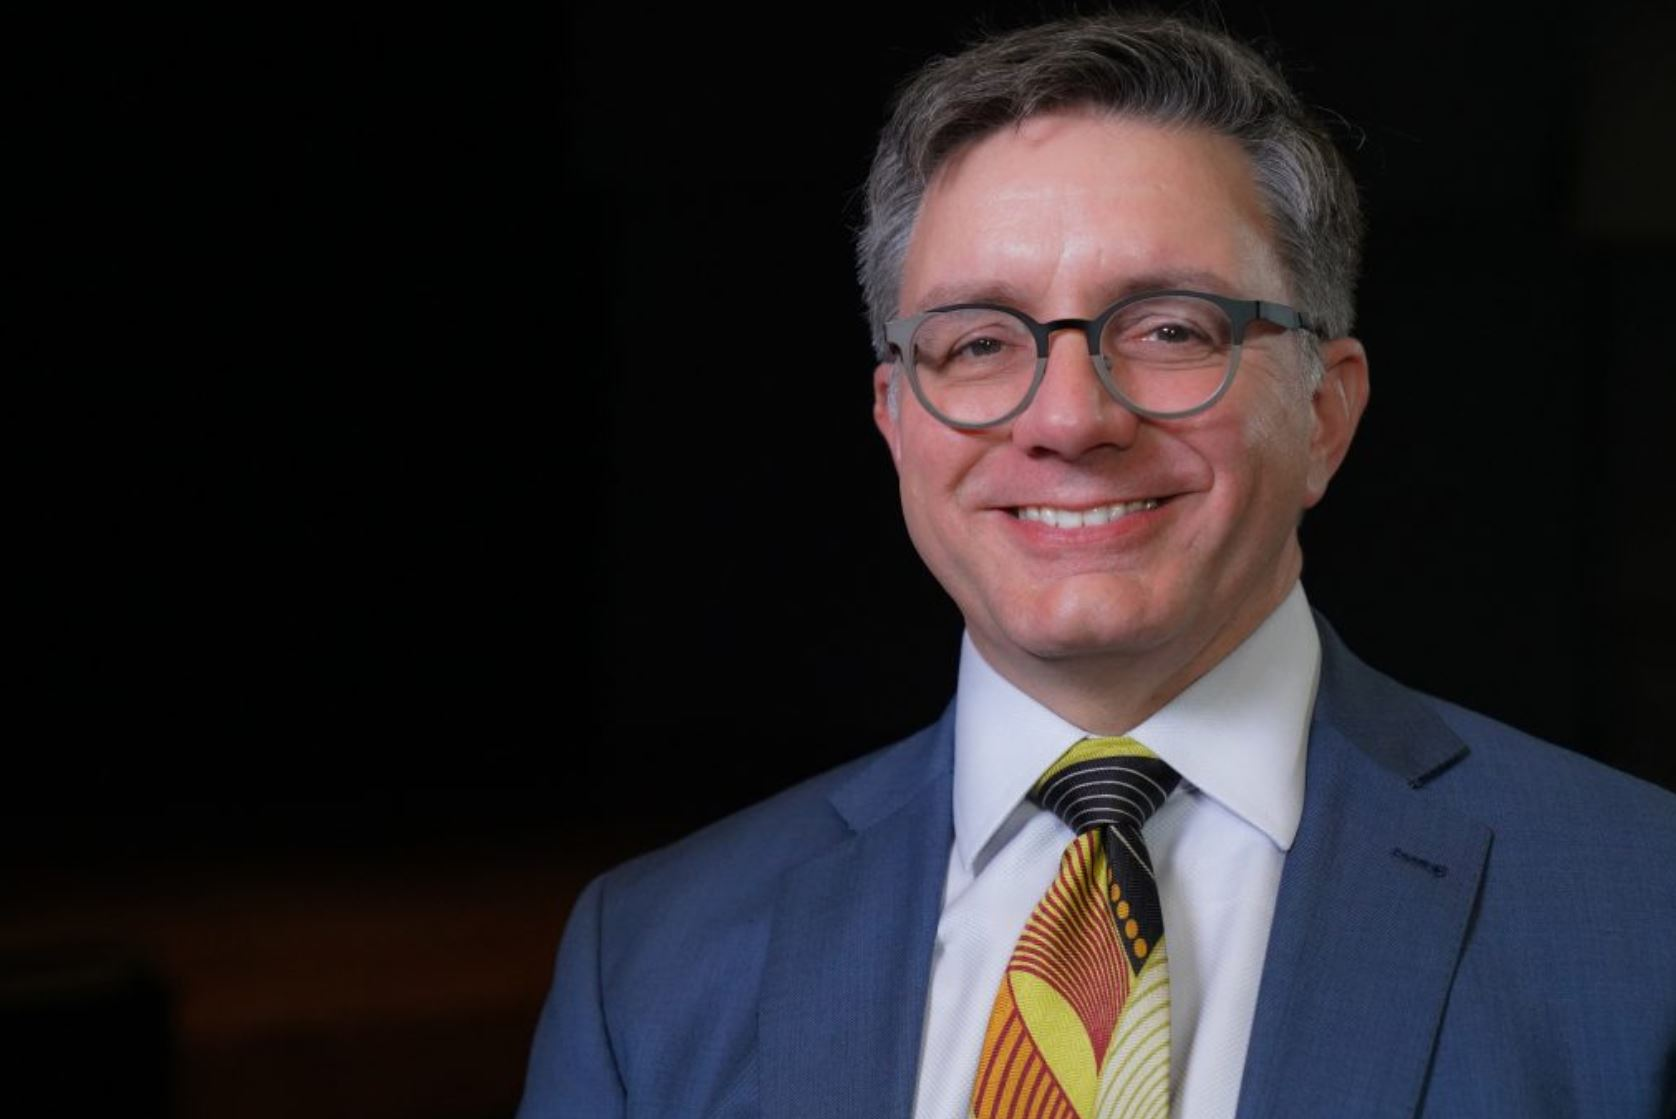 Mark Clague is the Associate Dean for Undergraduate Academic Affairs and Associate Professor at the School of Music, Theatre and Dance.